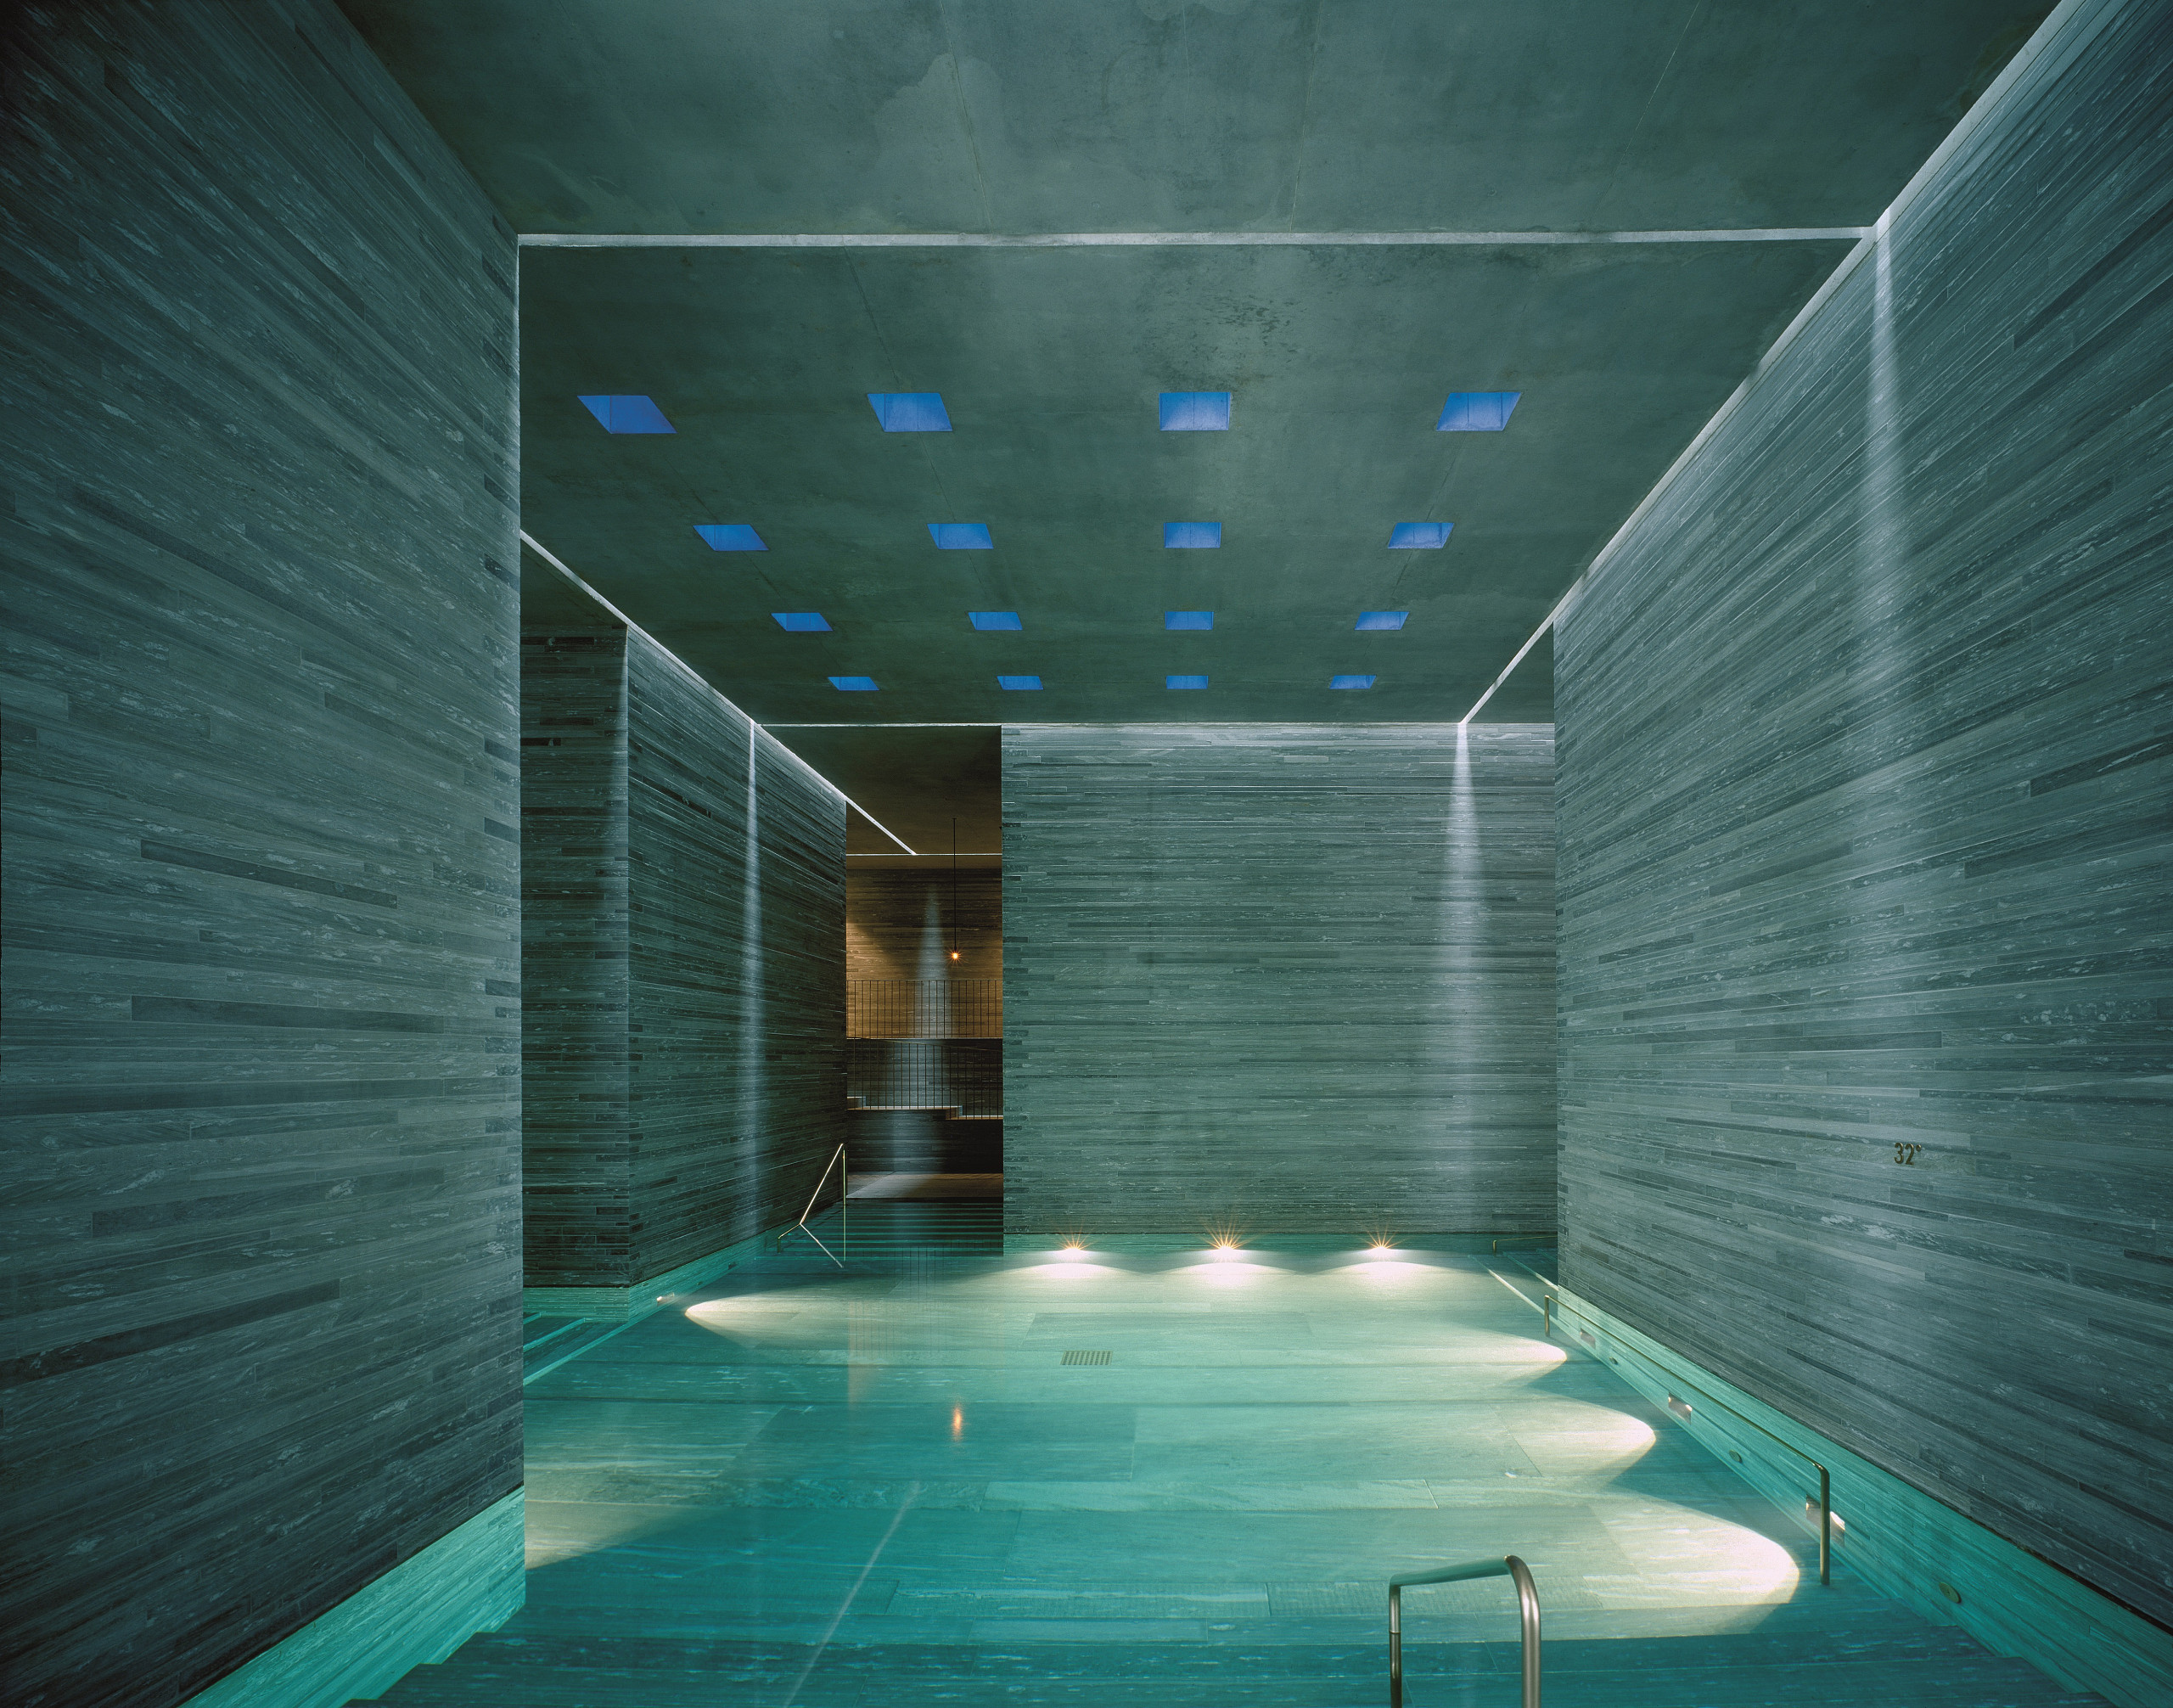 Therme Vals Atzwanger Ag Interiors Inside Ideas Interiors design about Everything [magnanprojects.com]